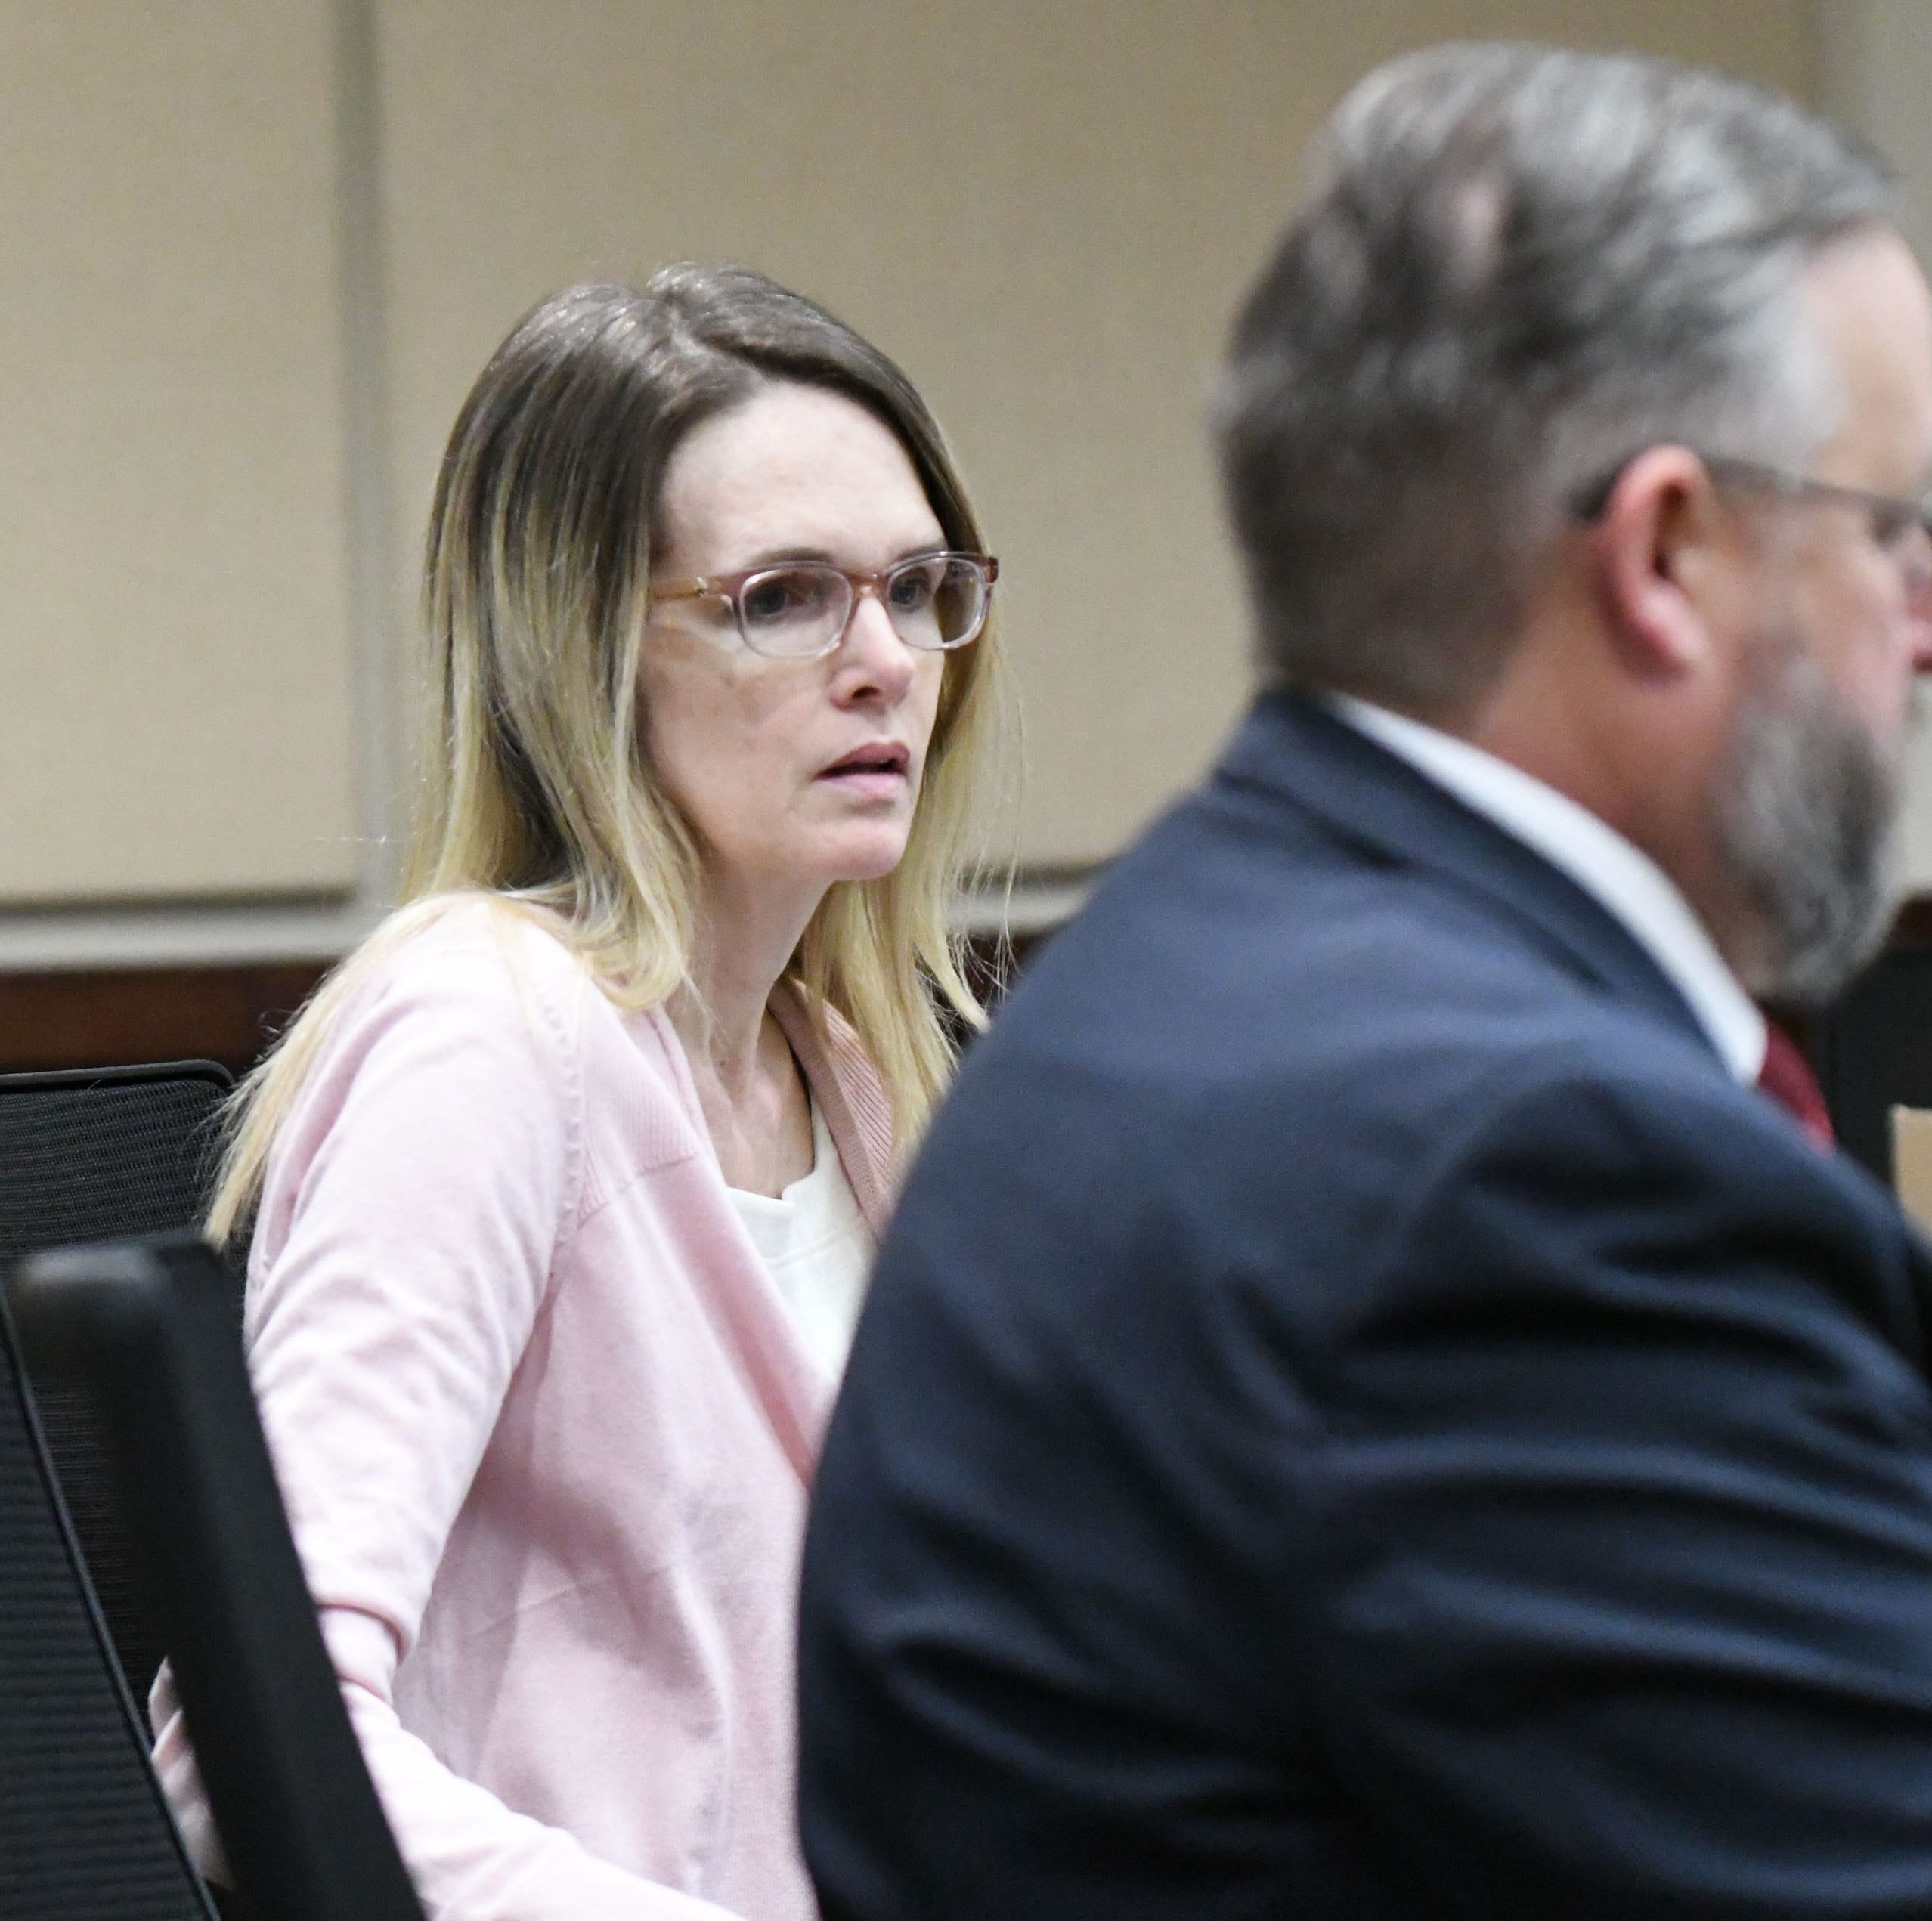 Denise Williams dresses in a soft pink cardigan for her first day on trial for the murder of her husband, Mike Williams, Tuesday, Dec. 11, 2018.